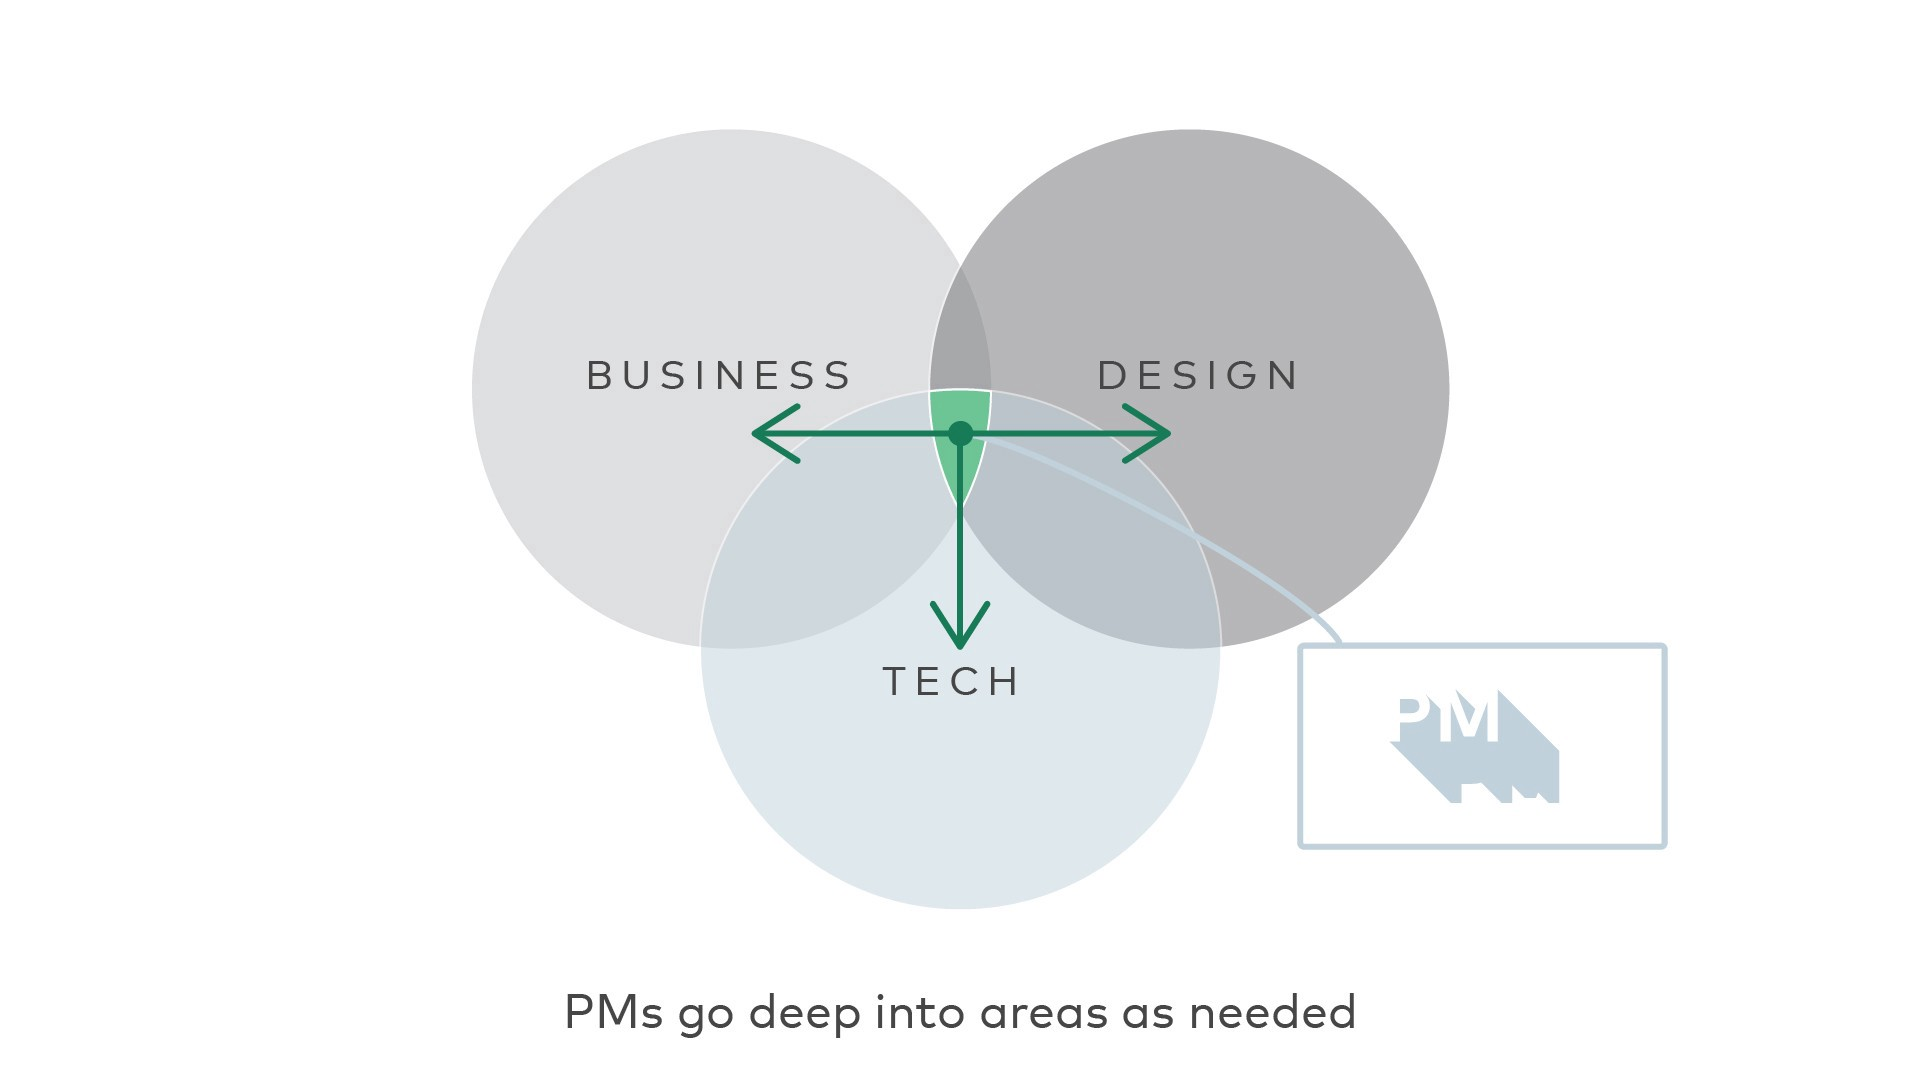 PMs do deep into other areas of Business, Design, and Tech as needed